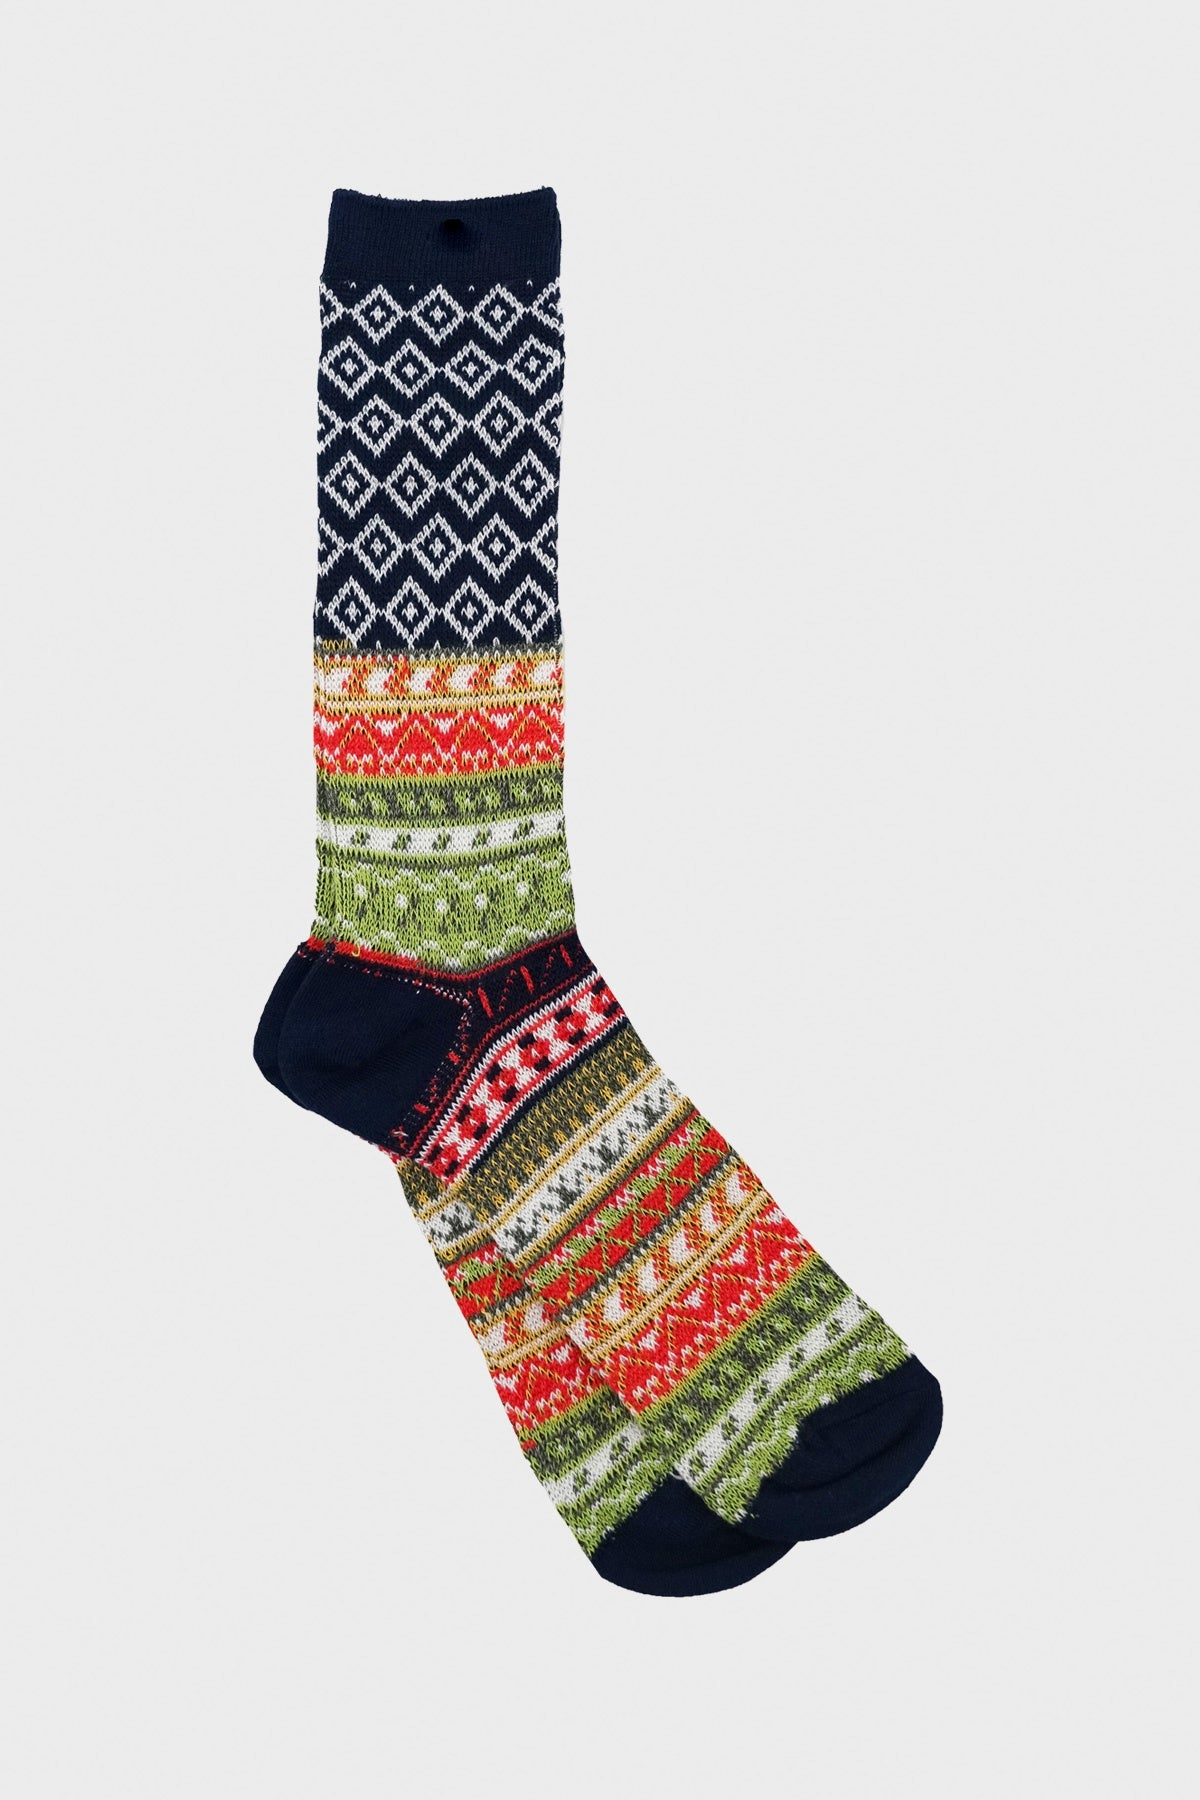 Anonymous Ism - Fairisle Jacquard Crew - Dark Navy - Canoe Club